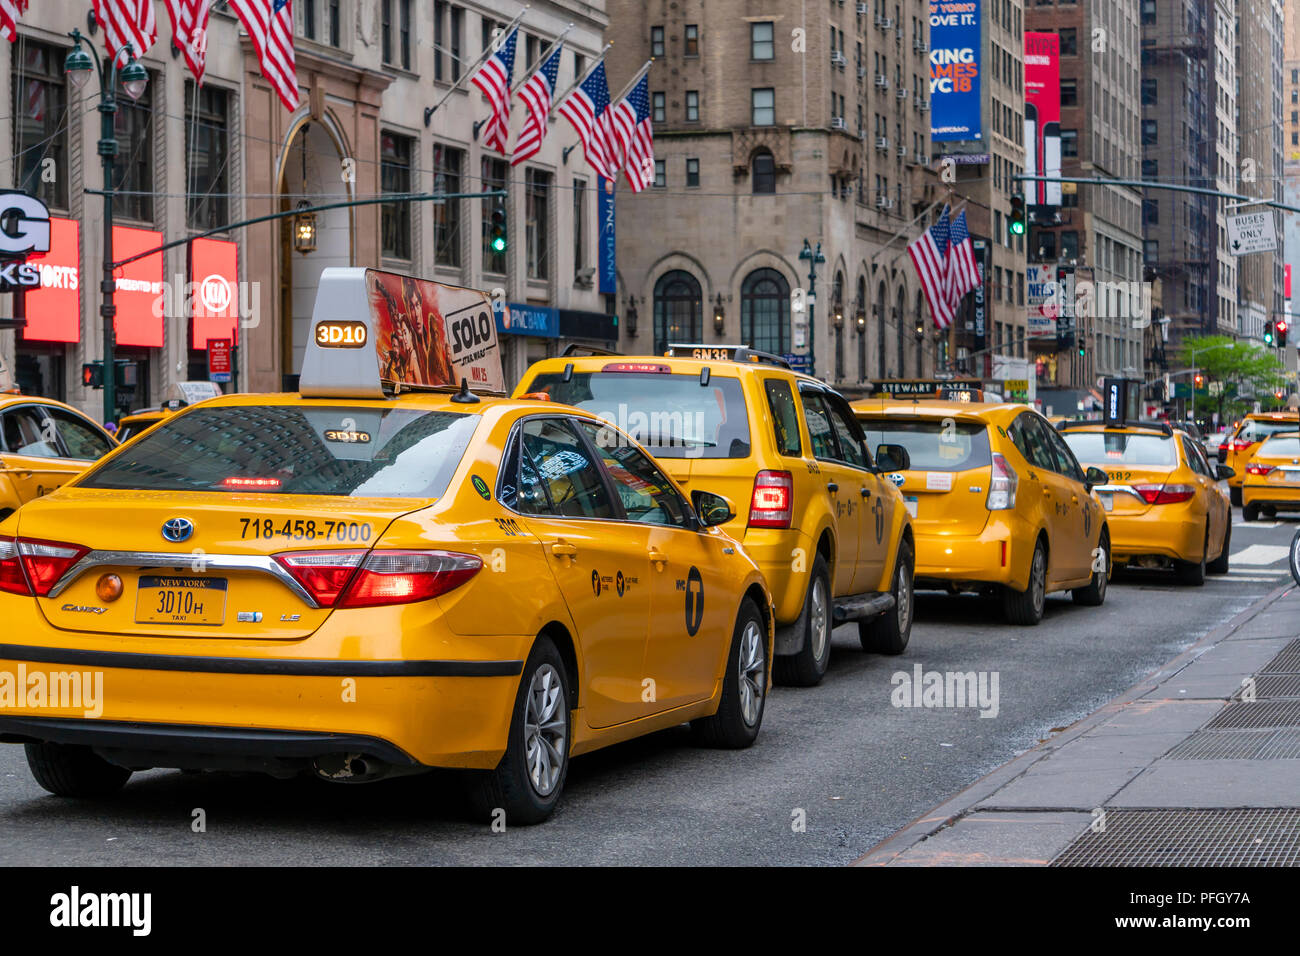 Yellow taxicabs in New York City - Stock Image